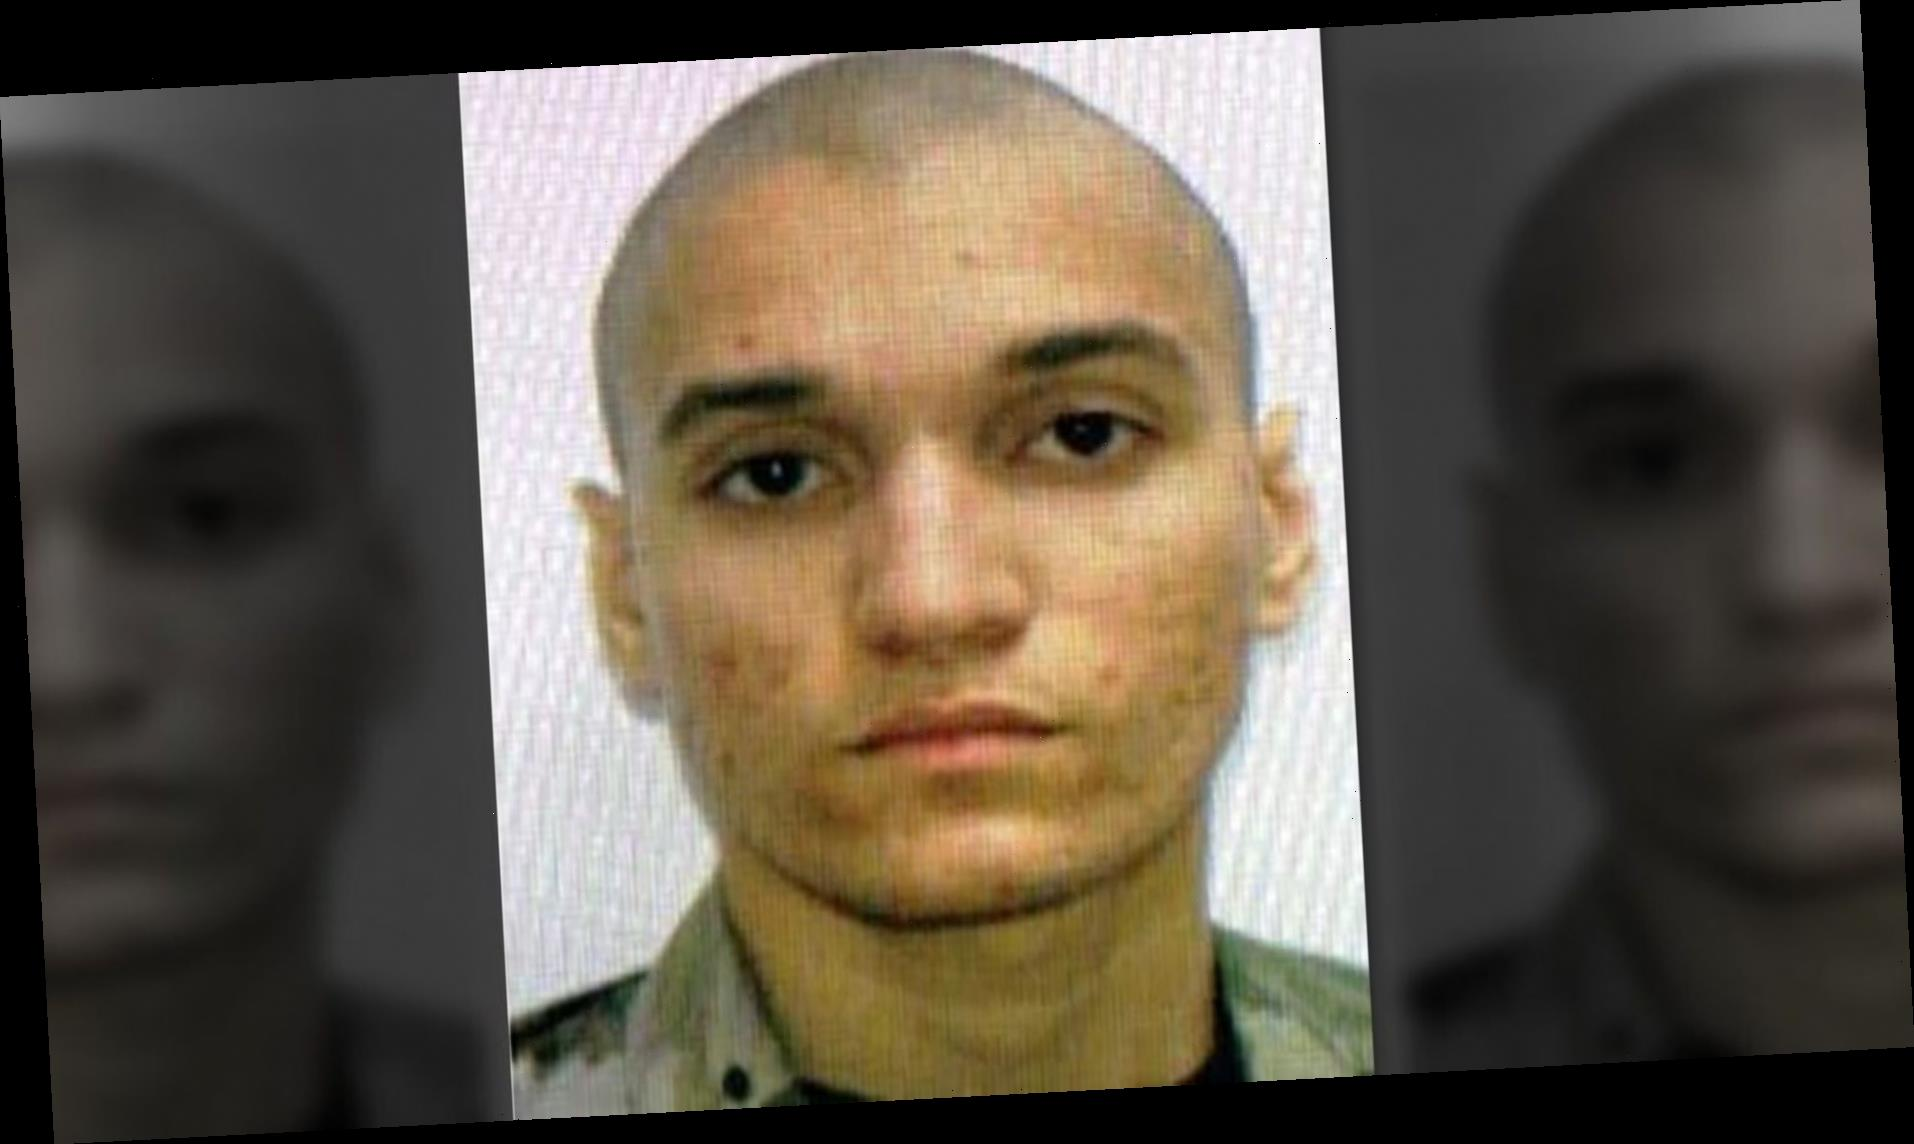 Missing Fort Hood soldier's body believed found in Texas: reports